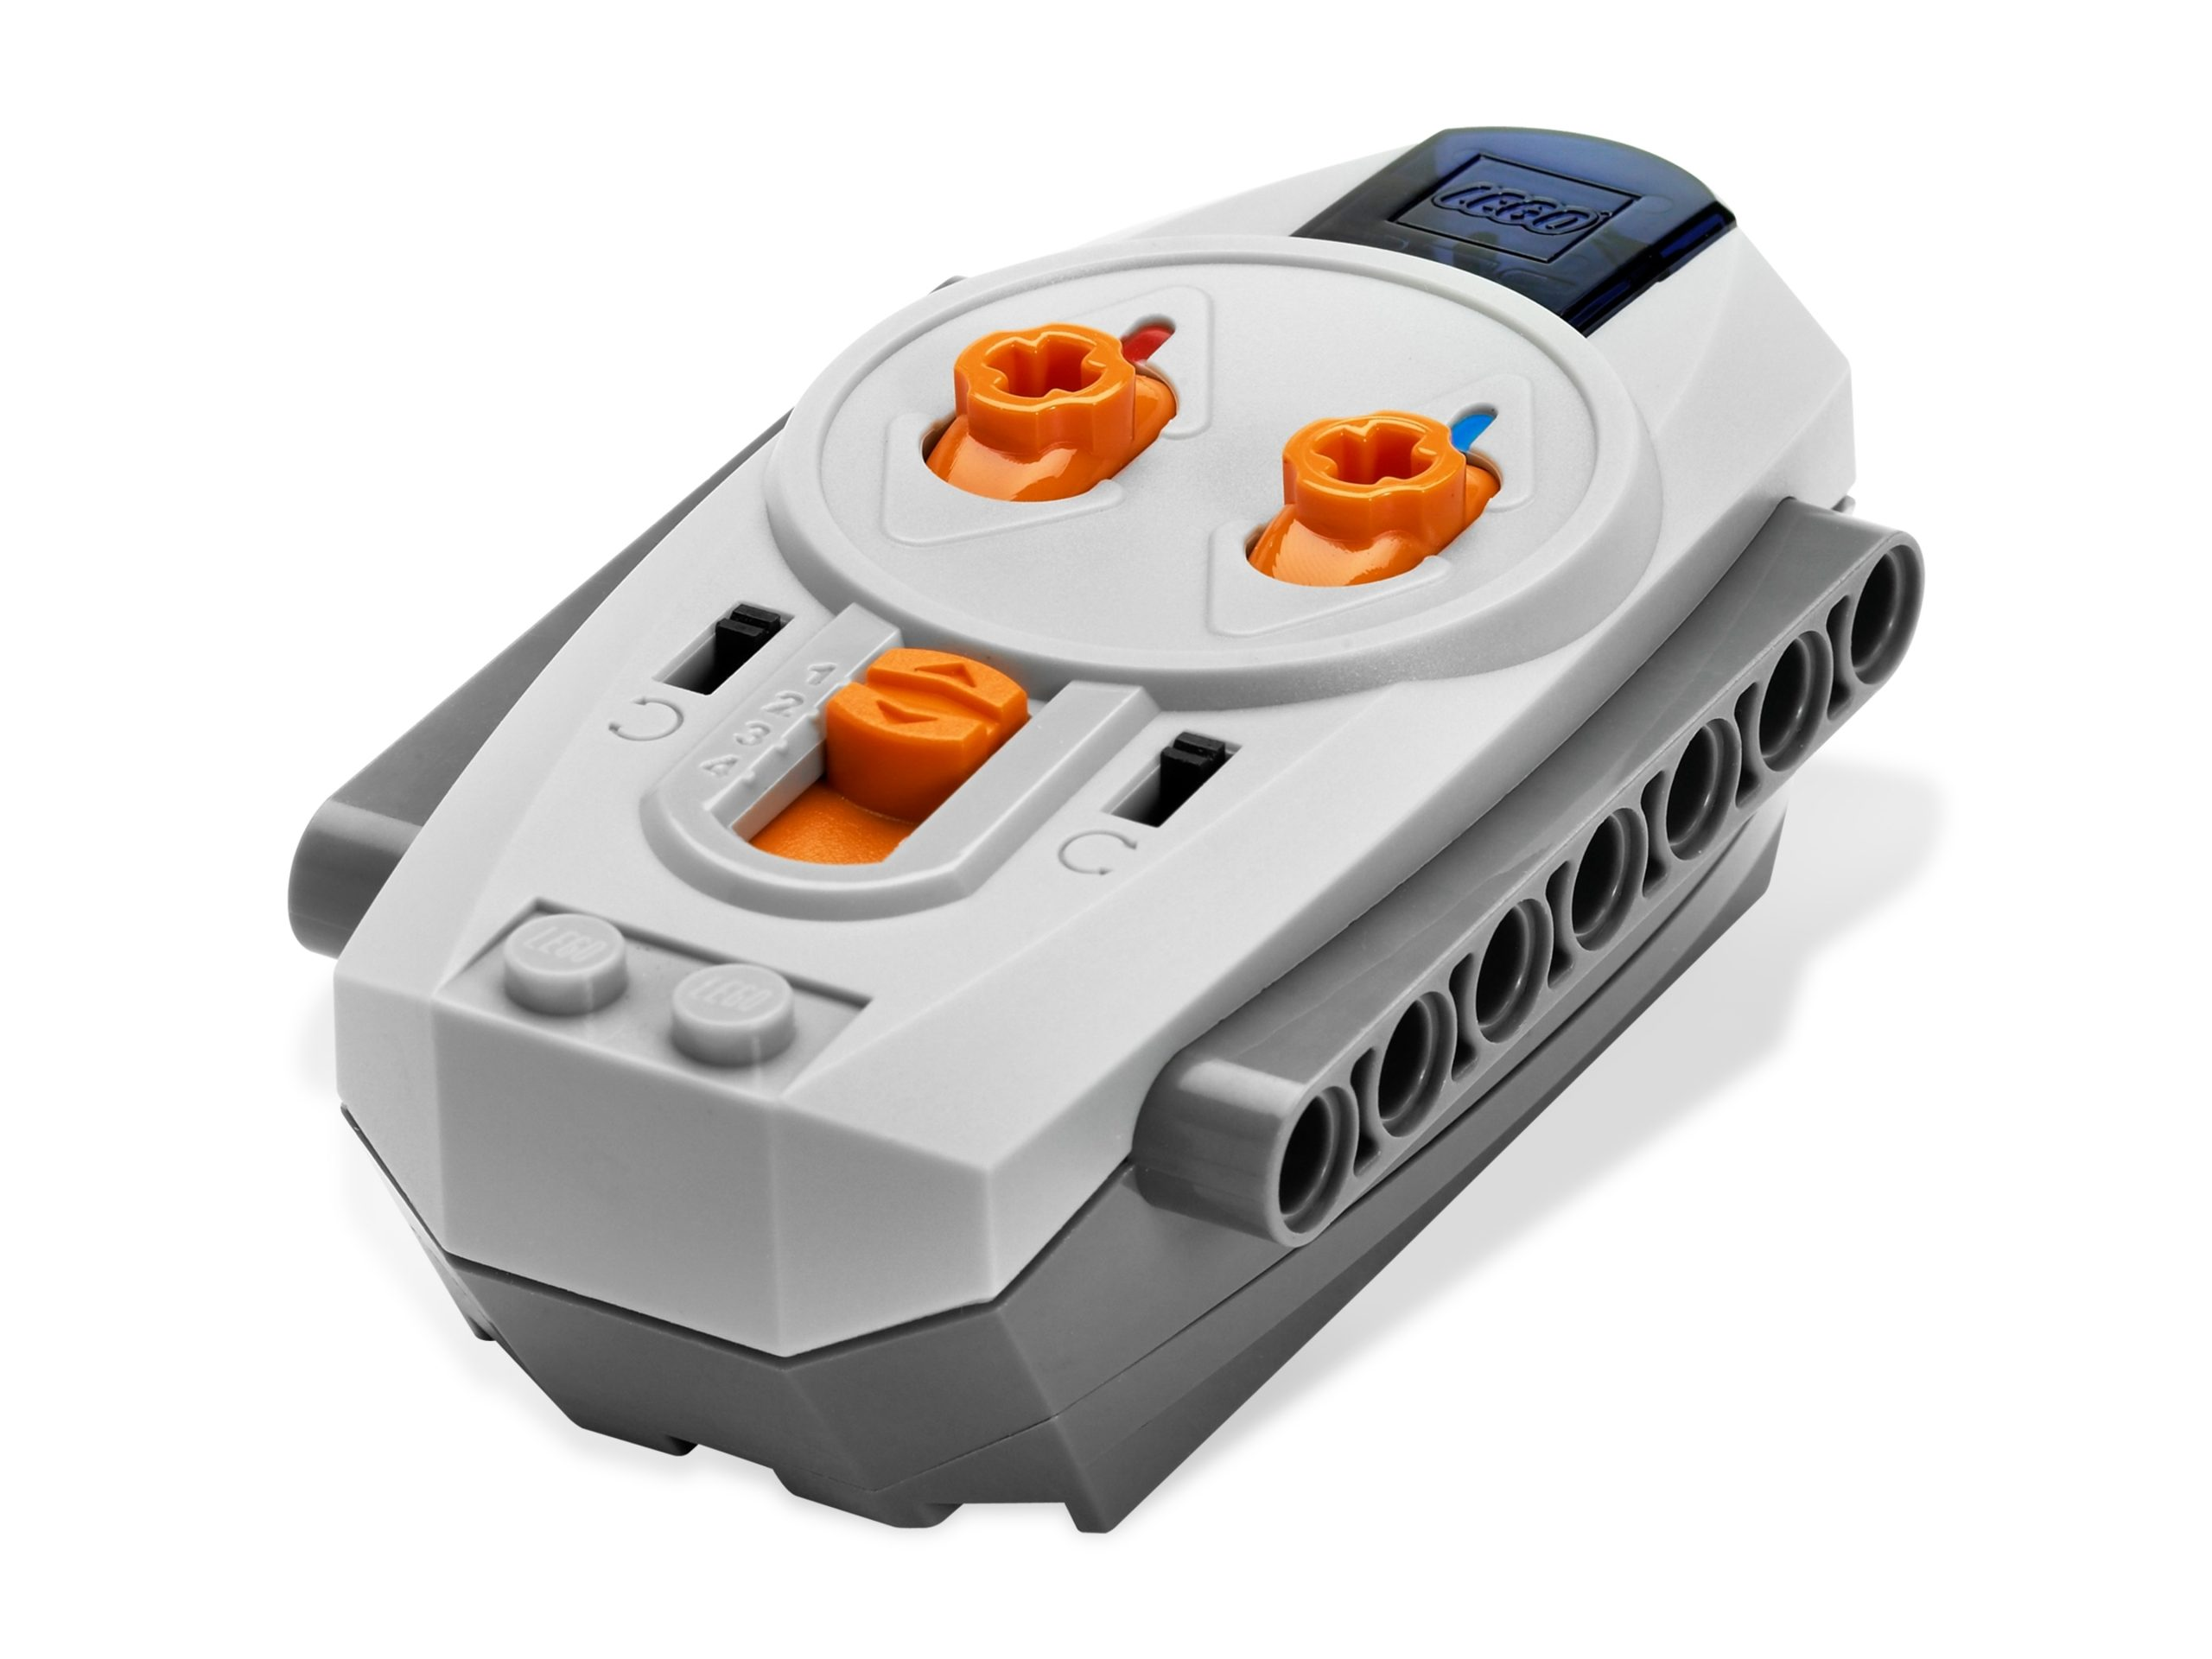 telecommande infrarouge lego 8885 power fonctions scaled